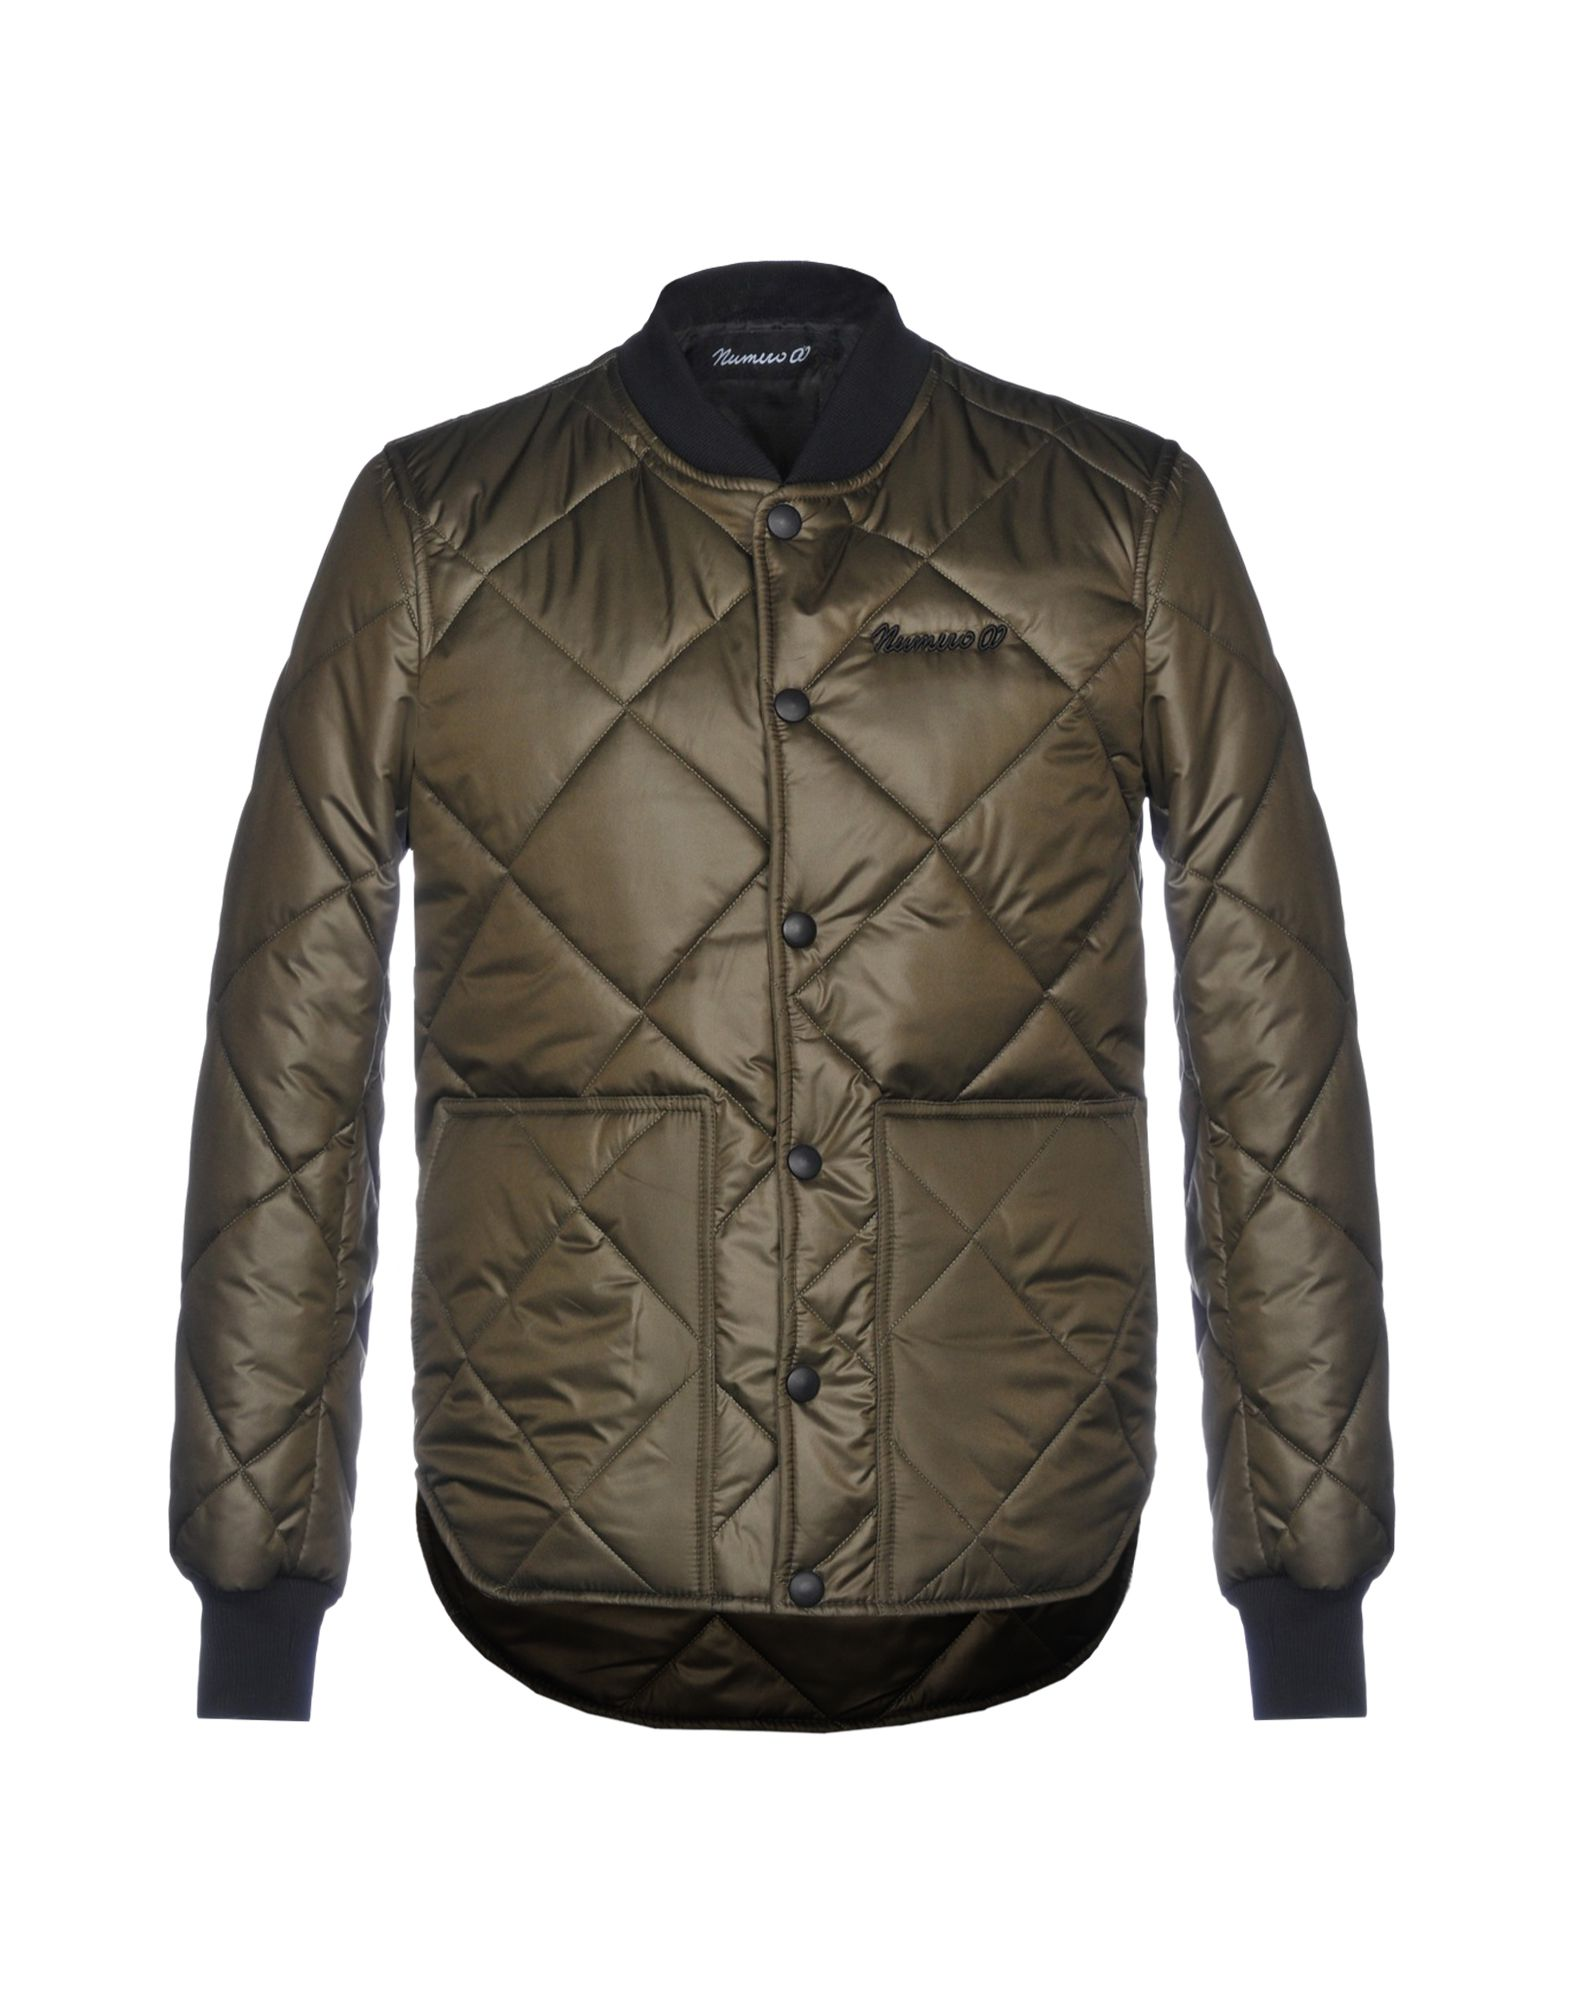 NUMERO00 Jacket in Military Green